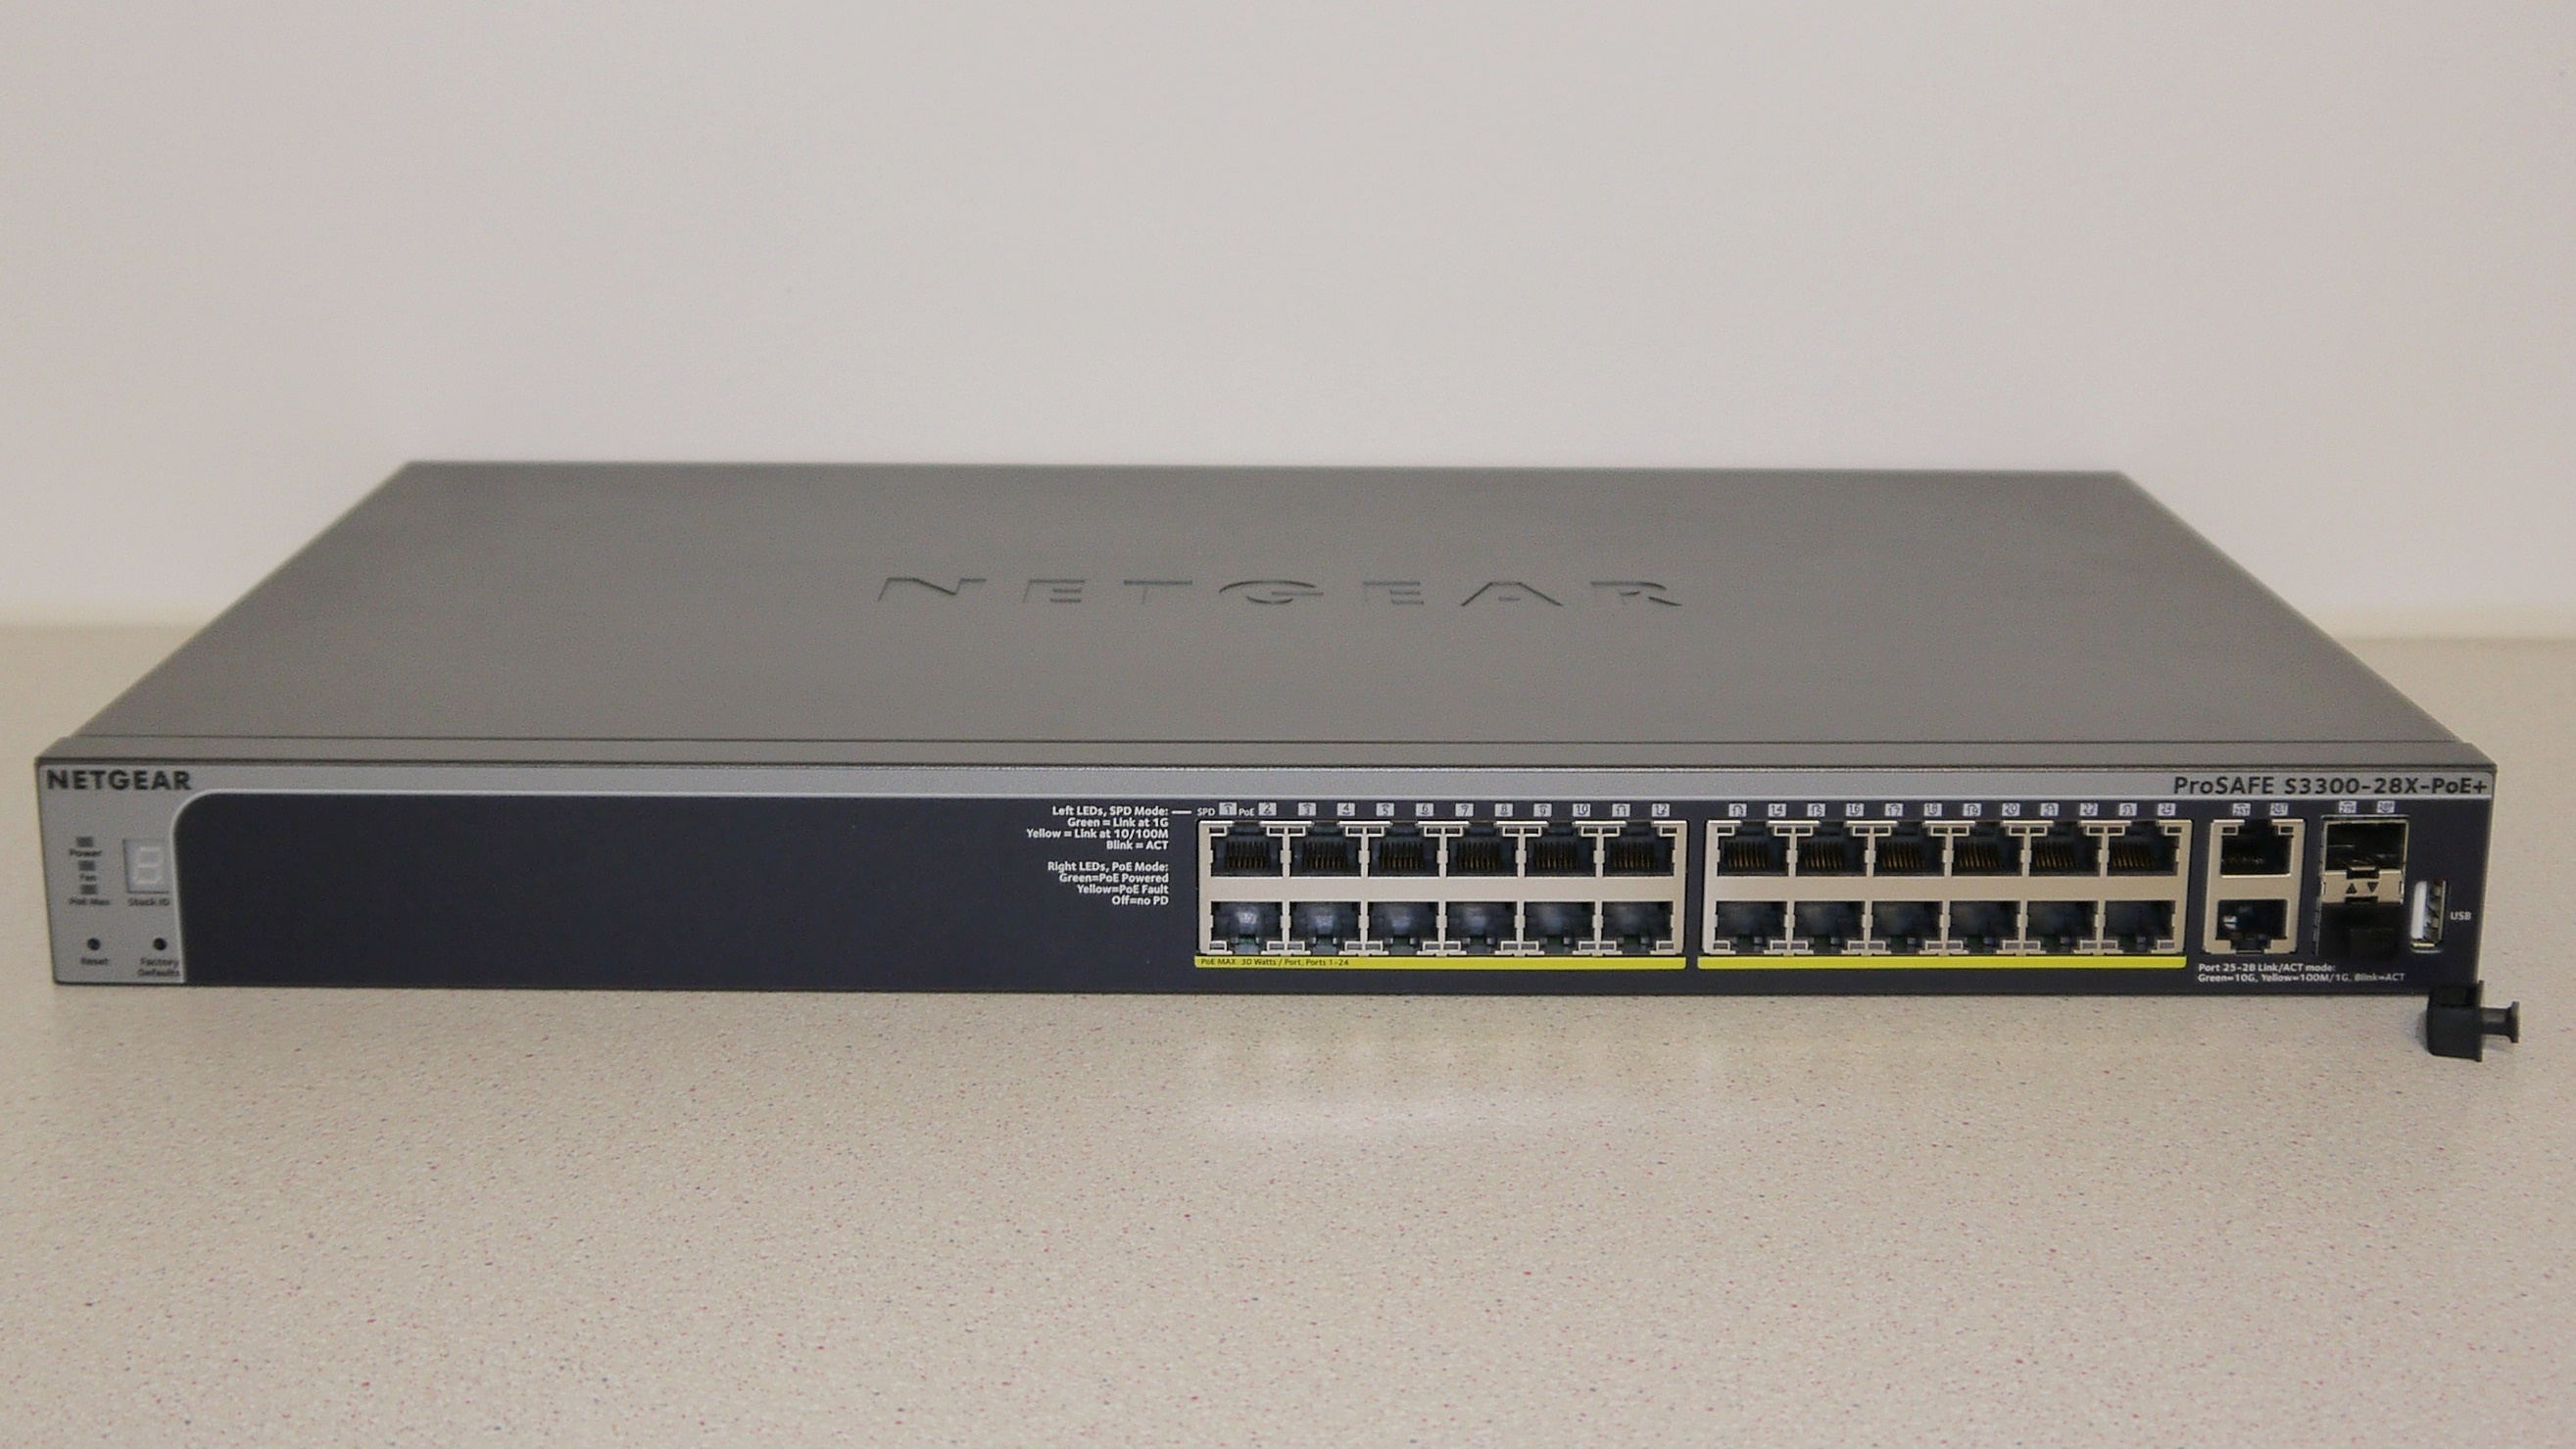 Netgear Prosafe Smart Switch S3300 28x Poe Review Techradar